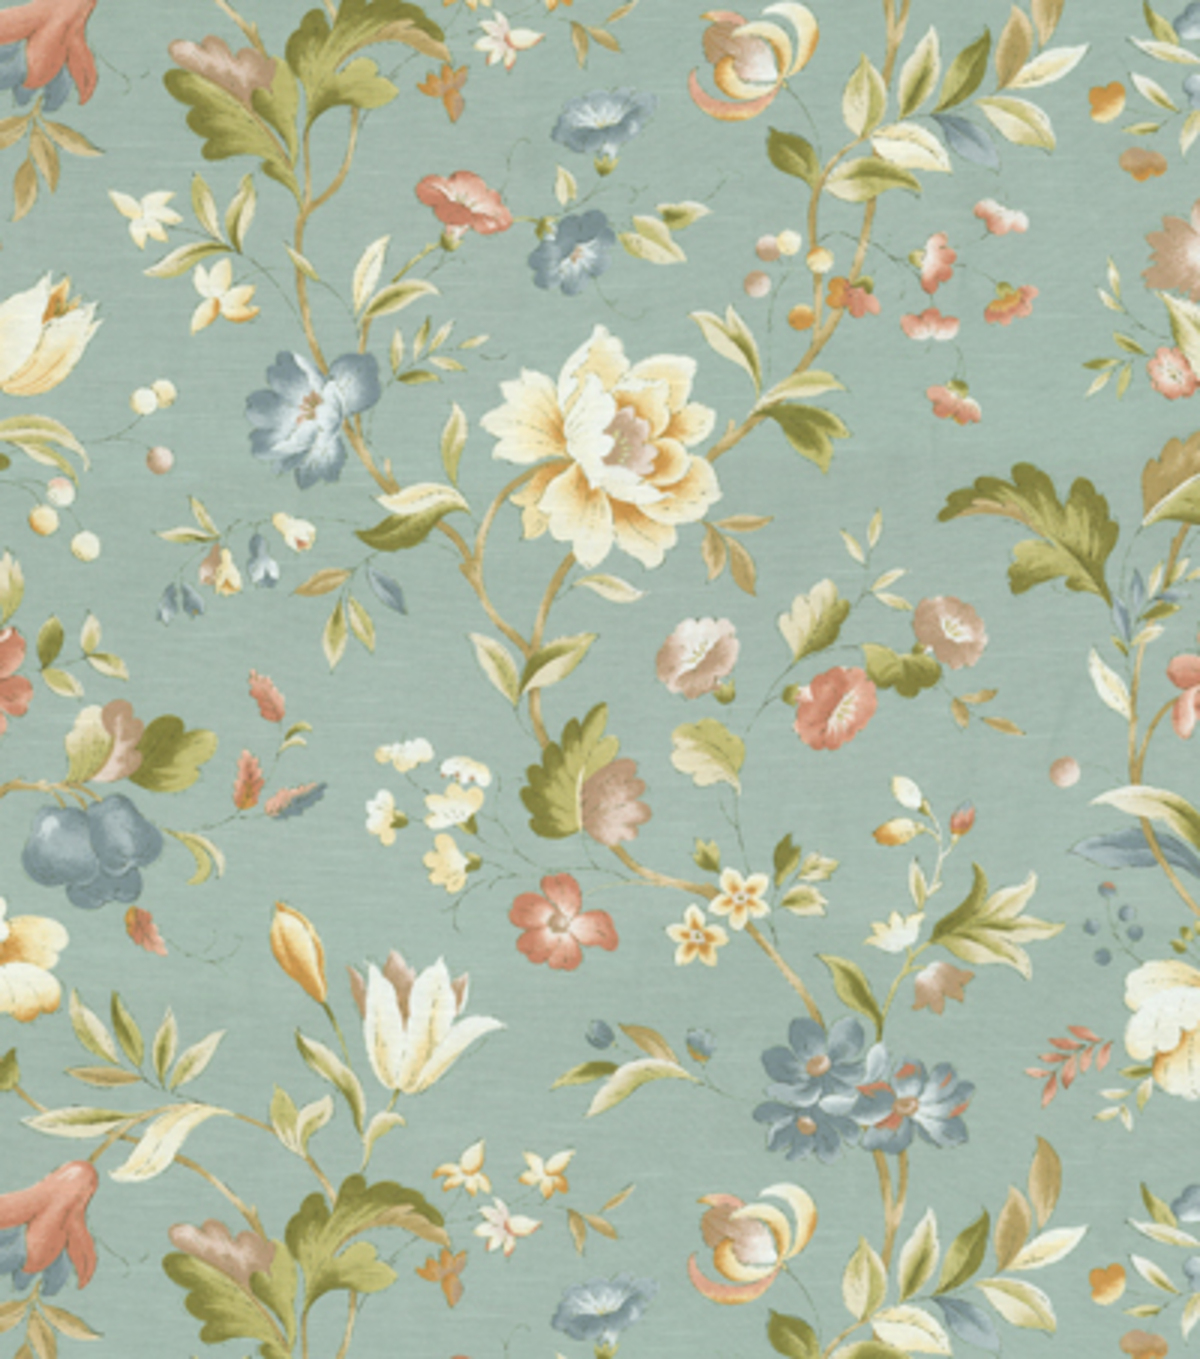 Home Decor 8\u0022x8\u0022 Fabric Swatch-Richloom Studio Mindy Surf